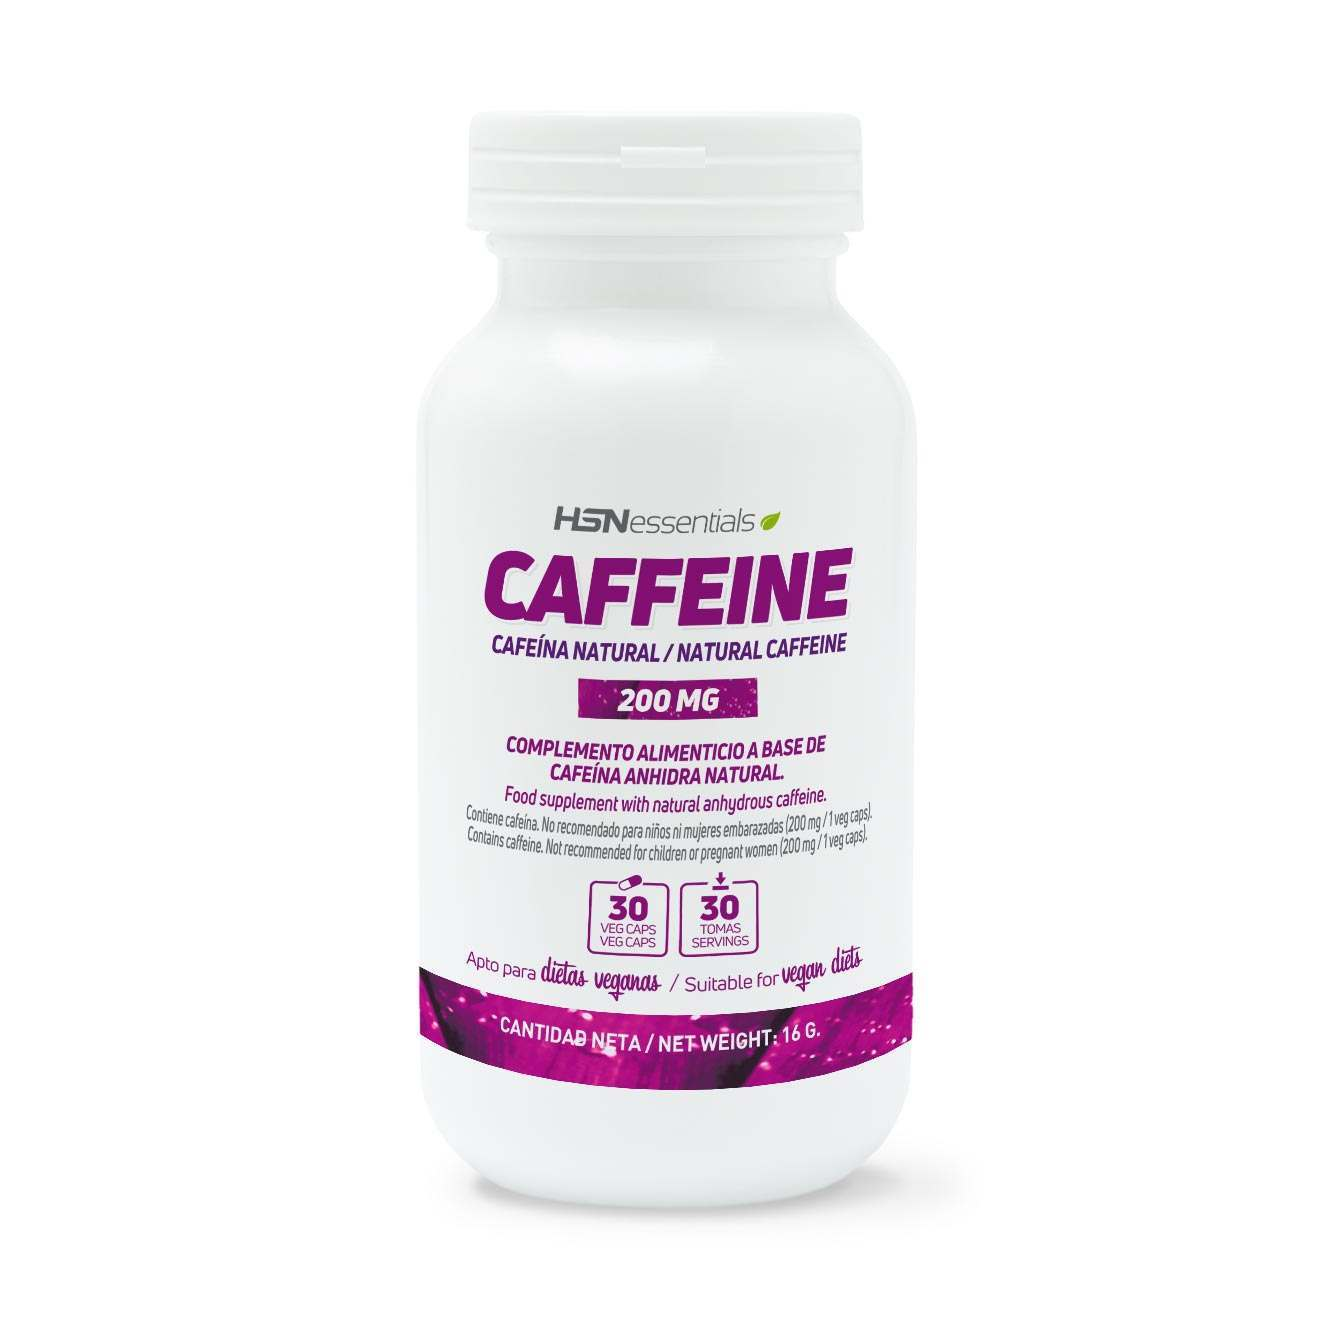 CAFFEINA NATURAL 200mg - 30 veg caps